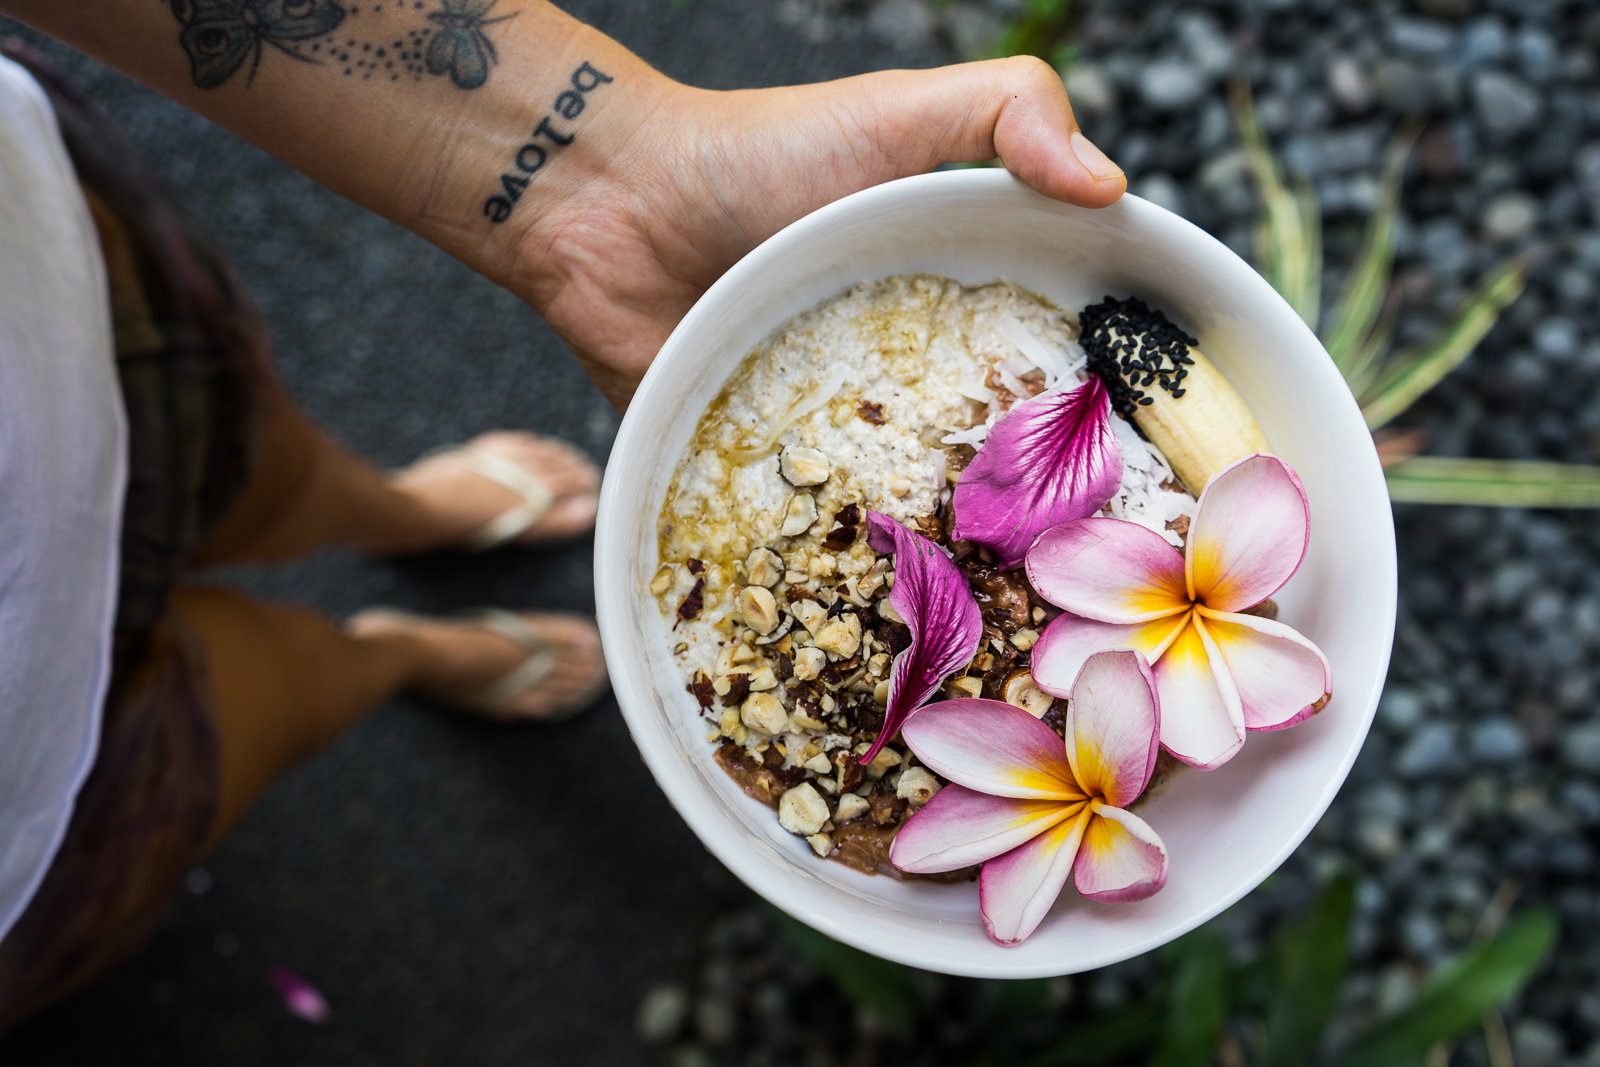 bowl of healthy porridge with nuts and flower toppings outside in tropical setting